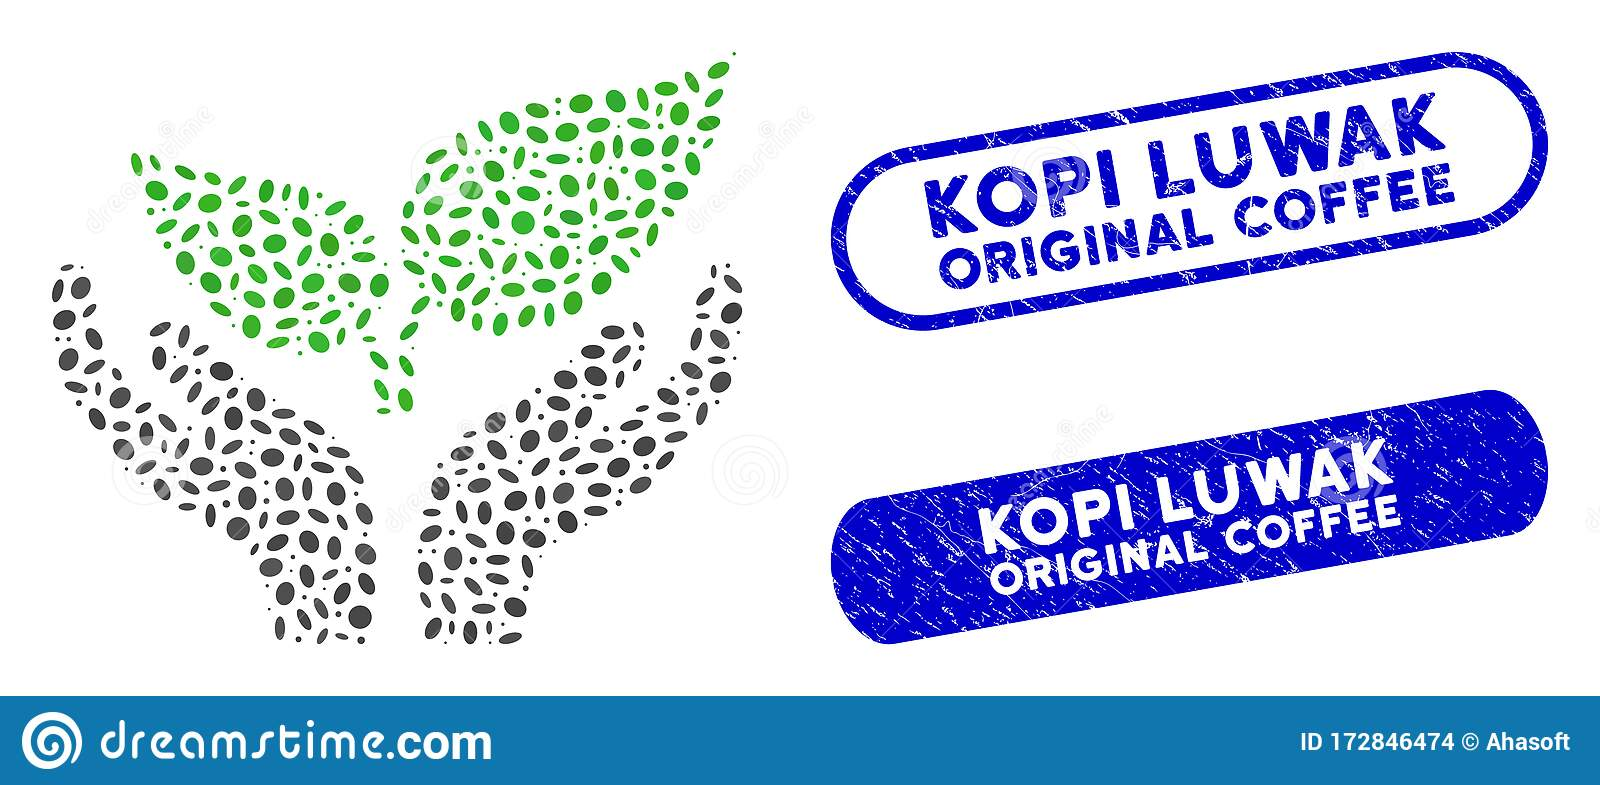 luwak vector stock illustrations 164 luwak vector stock illustrations vectors clipart dreamstime https www dreamstime com elliptic mosaic eco startup care hands textured kopi luwak original coffee seals grunge stamp watermarks caption vector image172846474